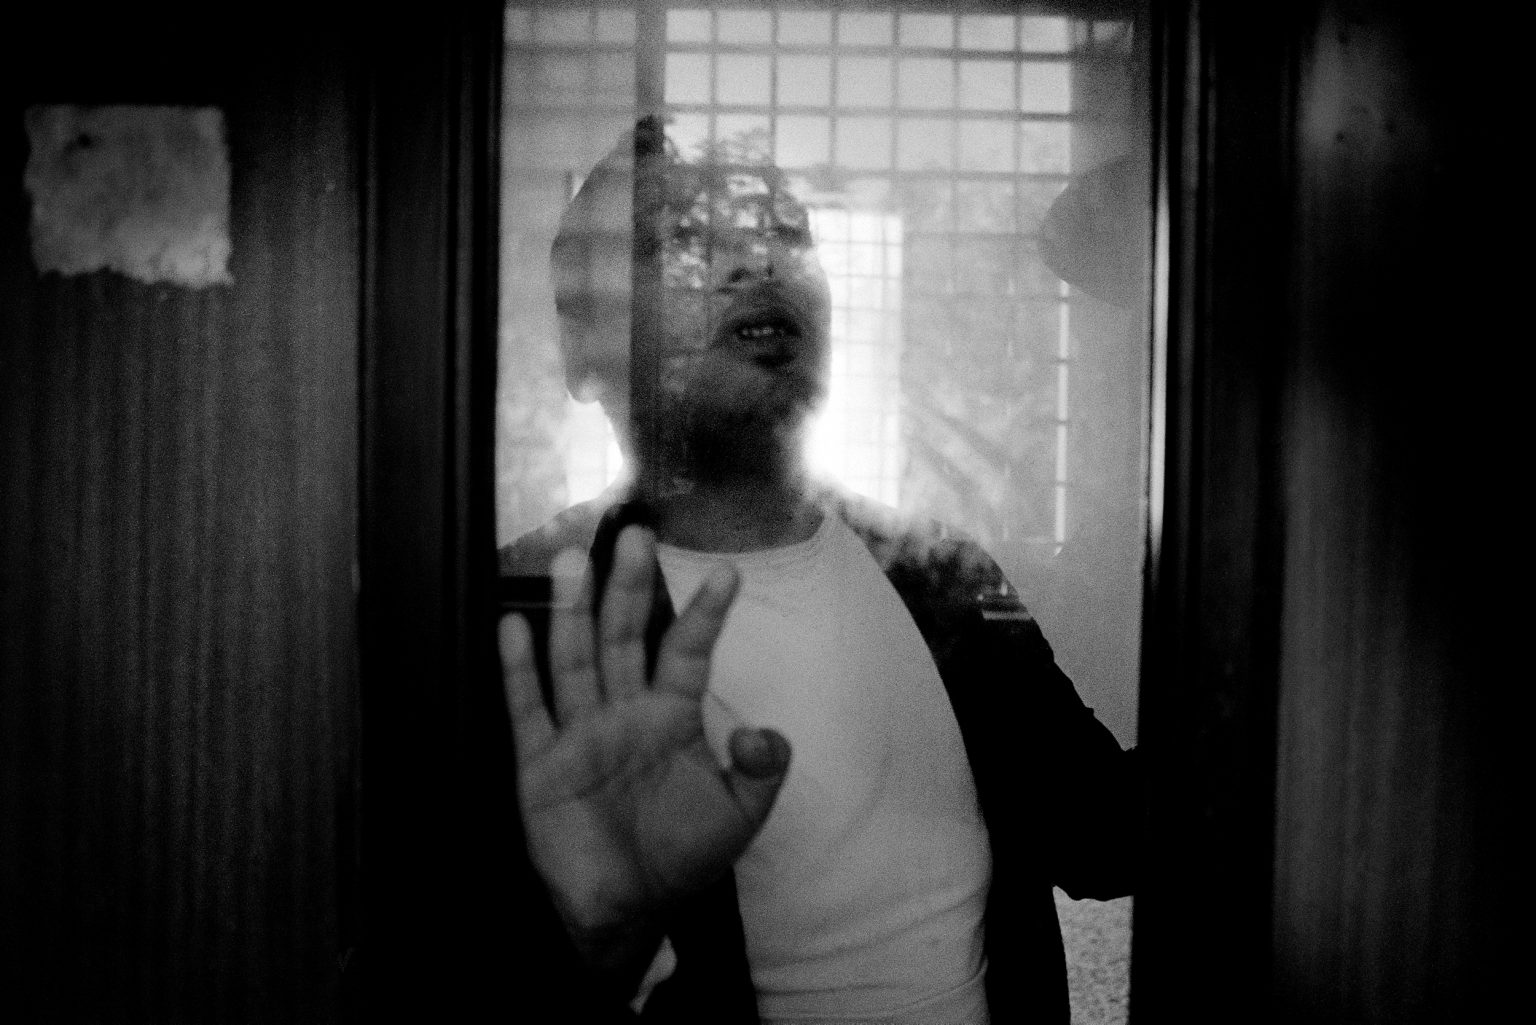 An inmate in solitary confinement. Judicial Psychiatric Hospital. Aversa, Caserta, Italy, 2006